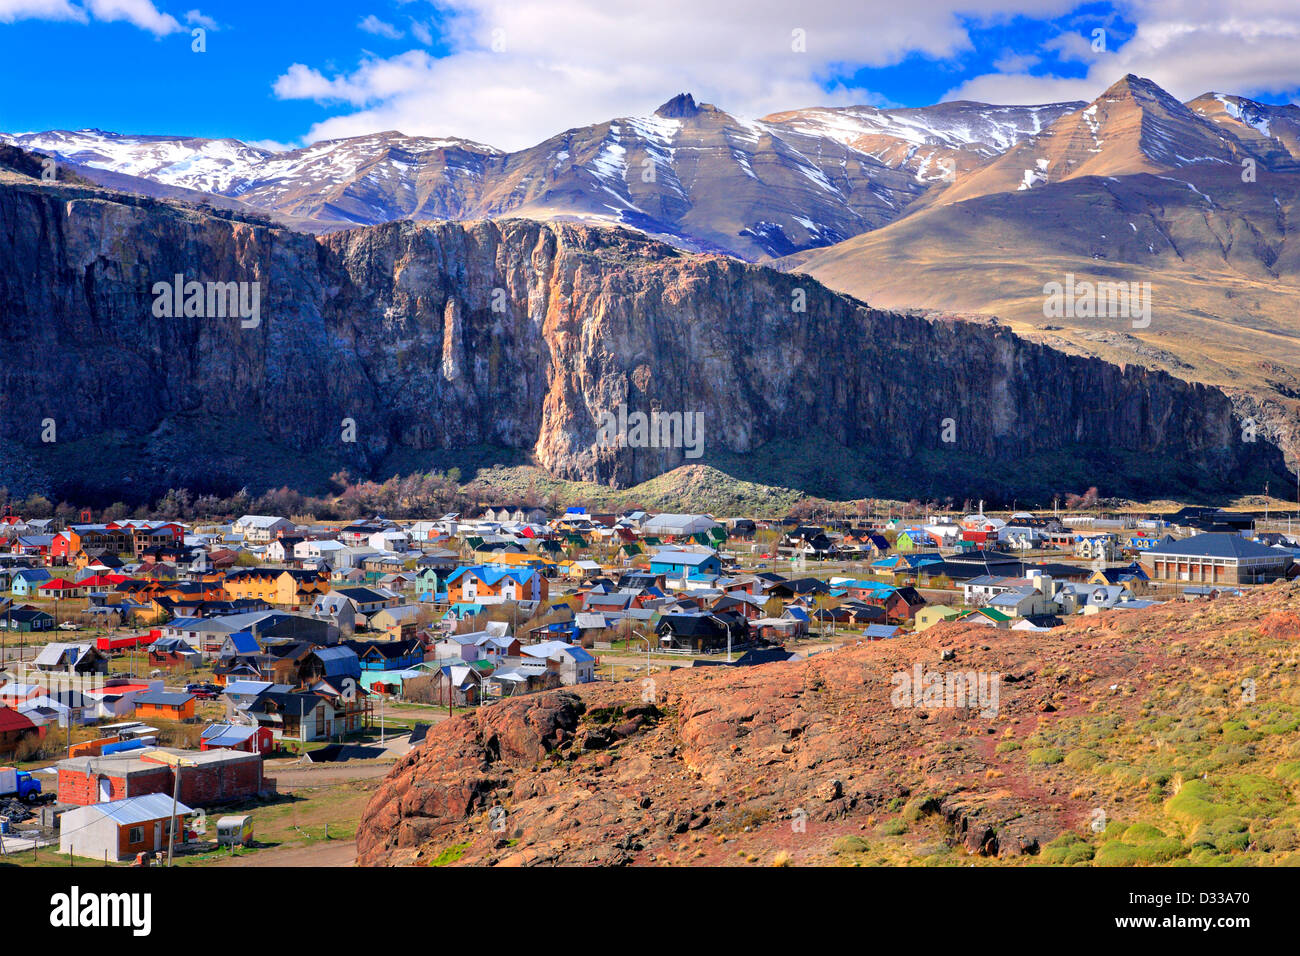 El Chalten Argentina  city photo : El Chalten, Santa Cruz, Patagonia Argentina Stock Photo, Royalty Free ...